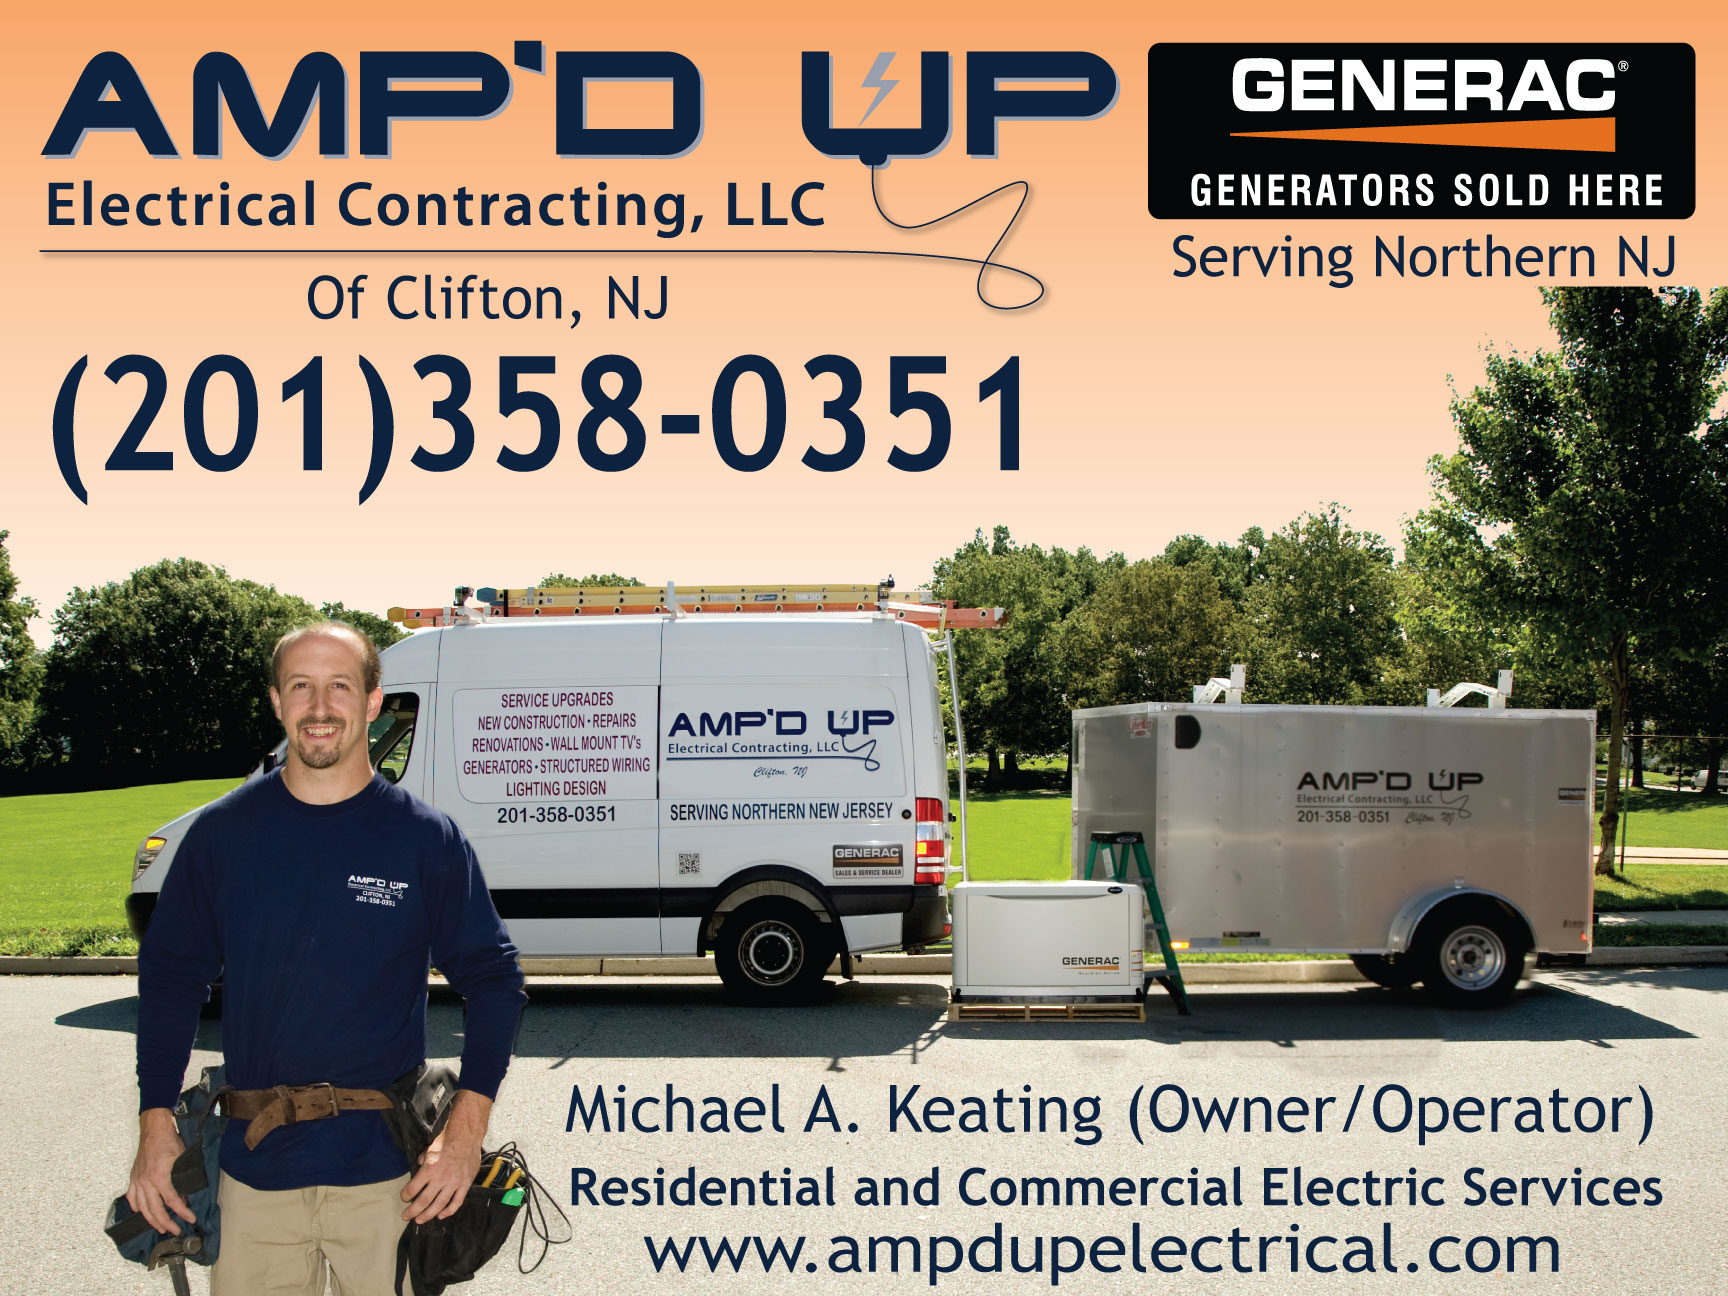 Ampd Up Electrical Contr Llc Highland Lakes Nj 201358 Circuit Panel Main Service Upgrades Repairs 2013580351ampd Contracting We Provide Quickly Responsibly